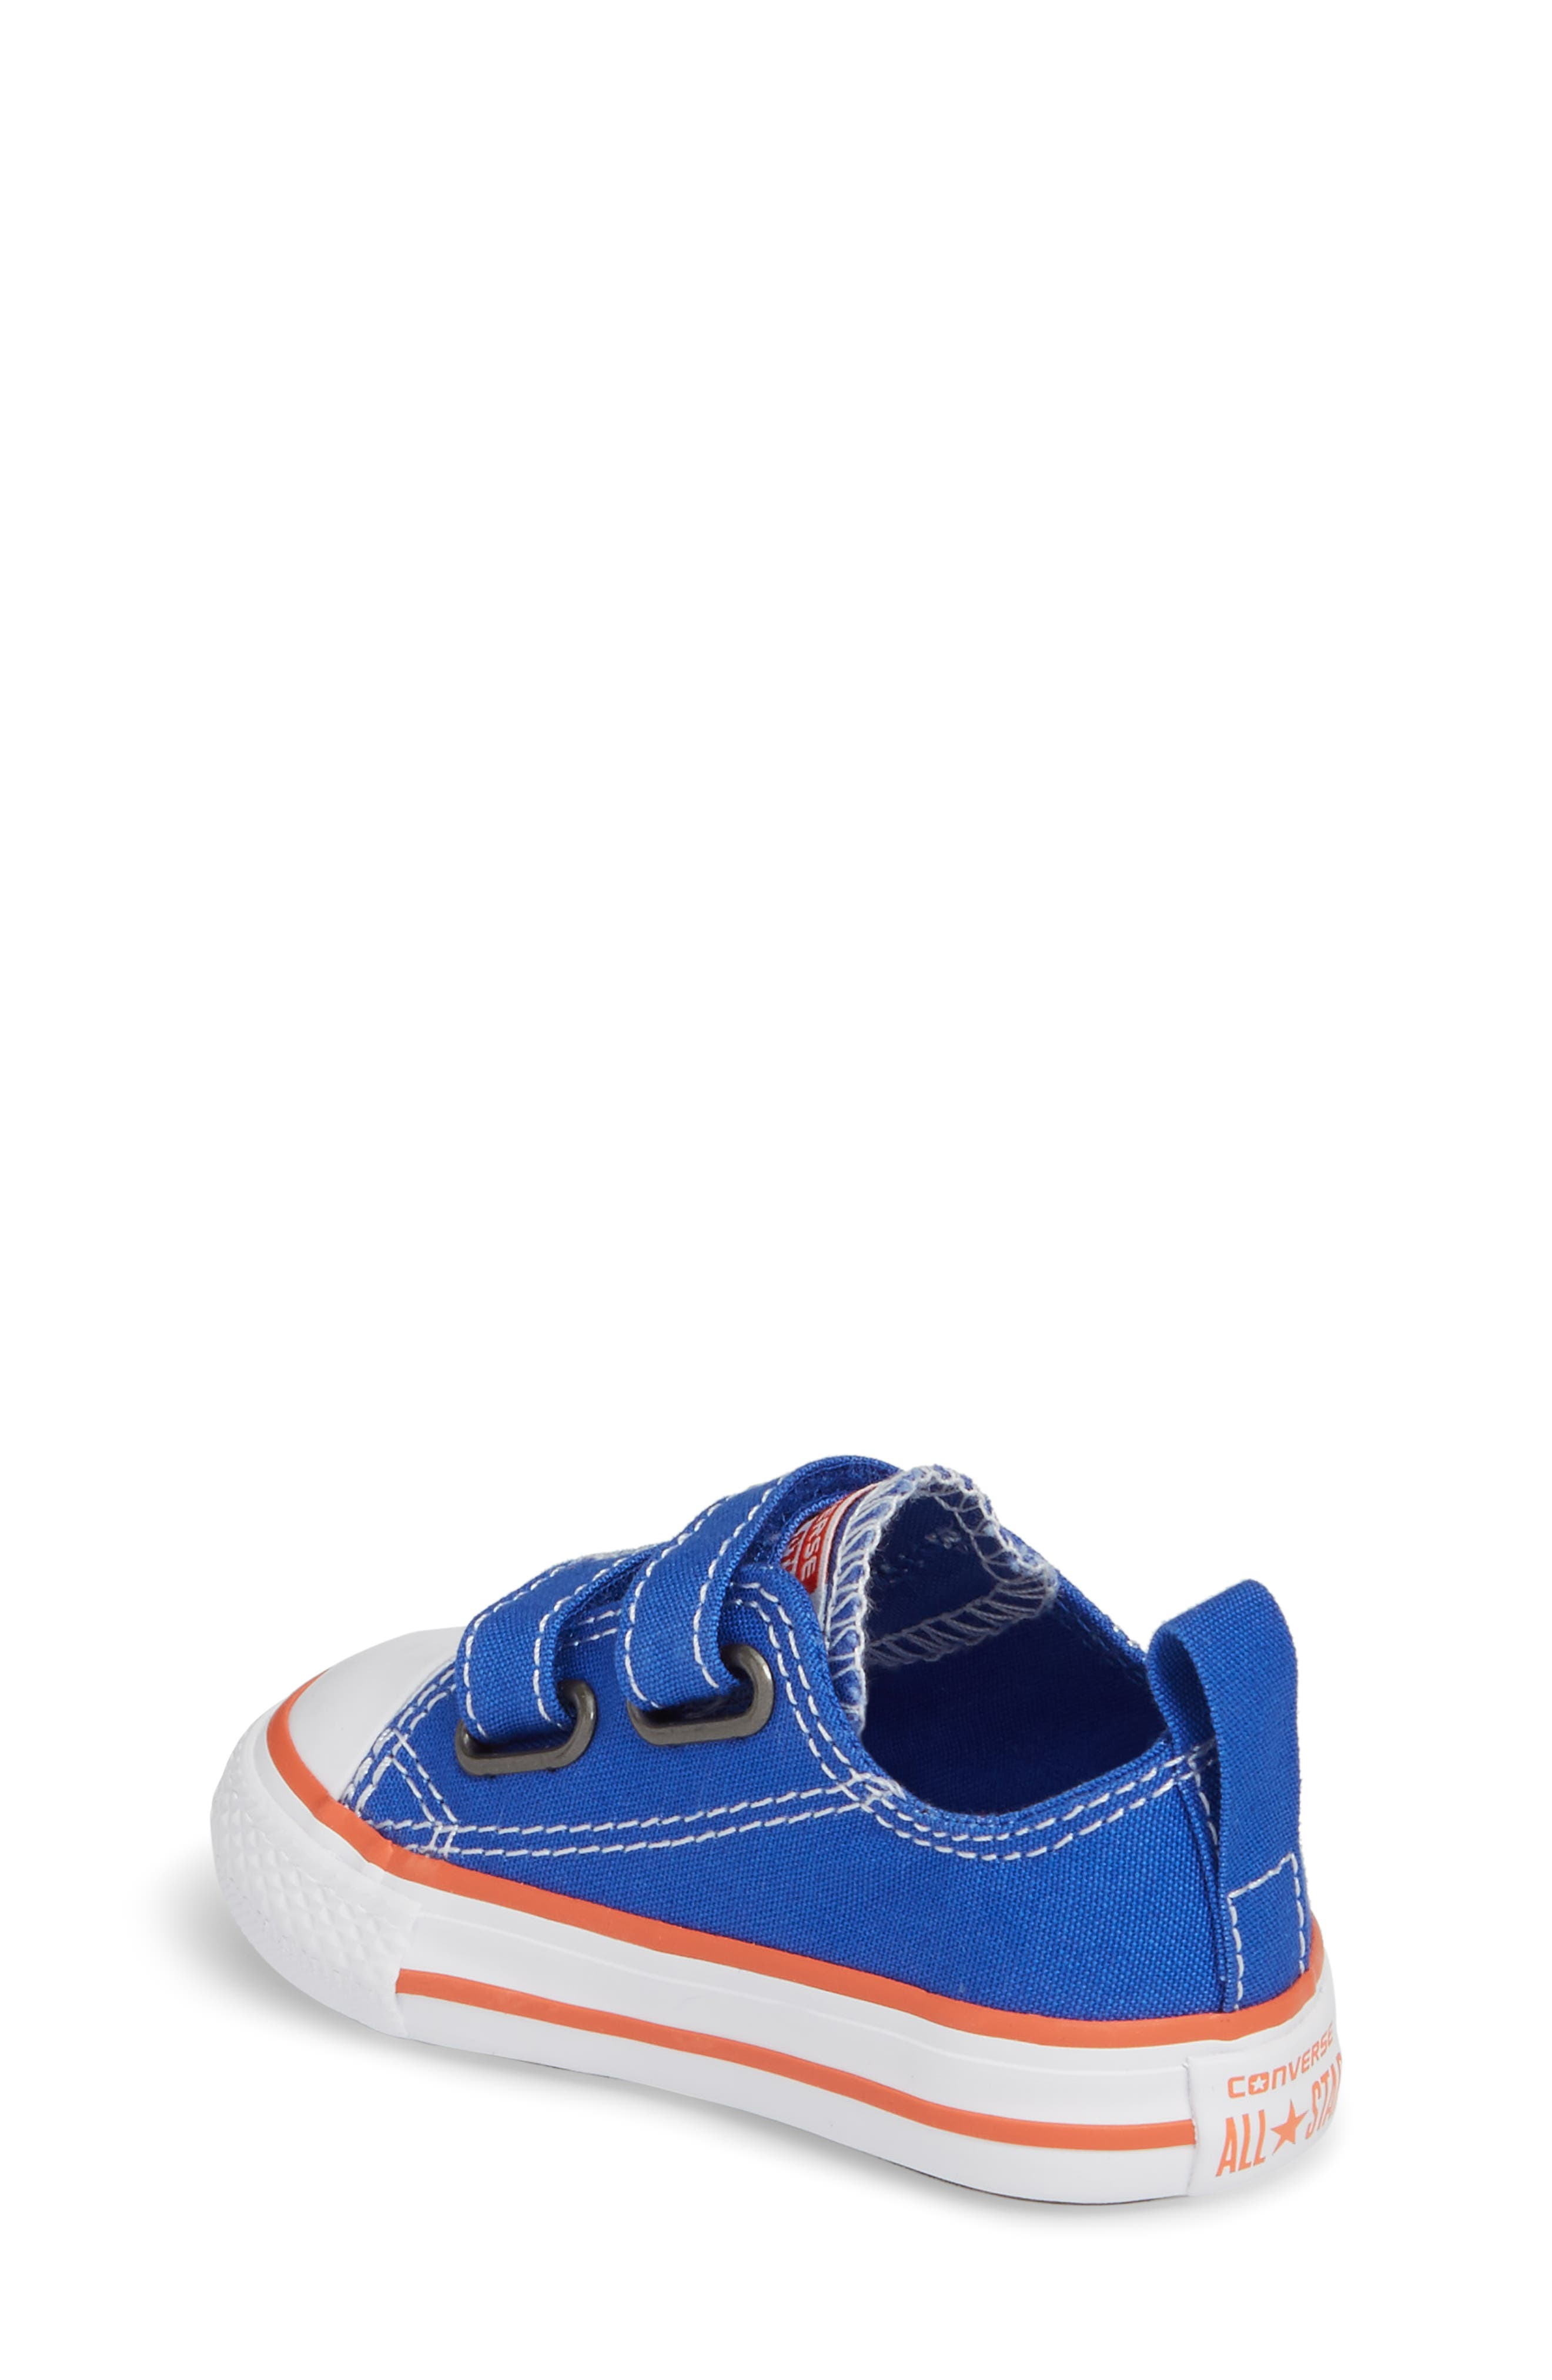 Alternate Image 2  - Converse Chuck Taylor® All Star® Seasonal 2V Low Top Sneaker (Baby, Walker & Toddler)